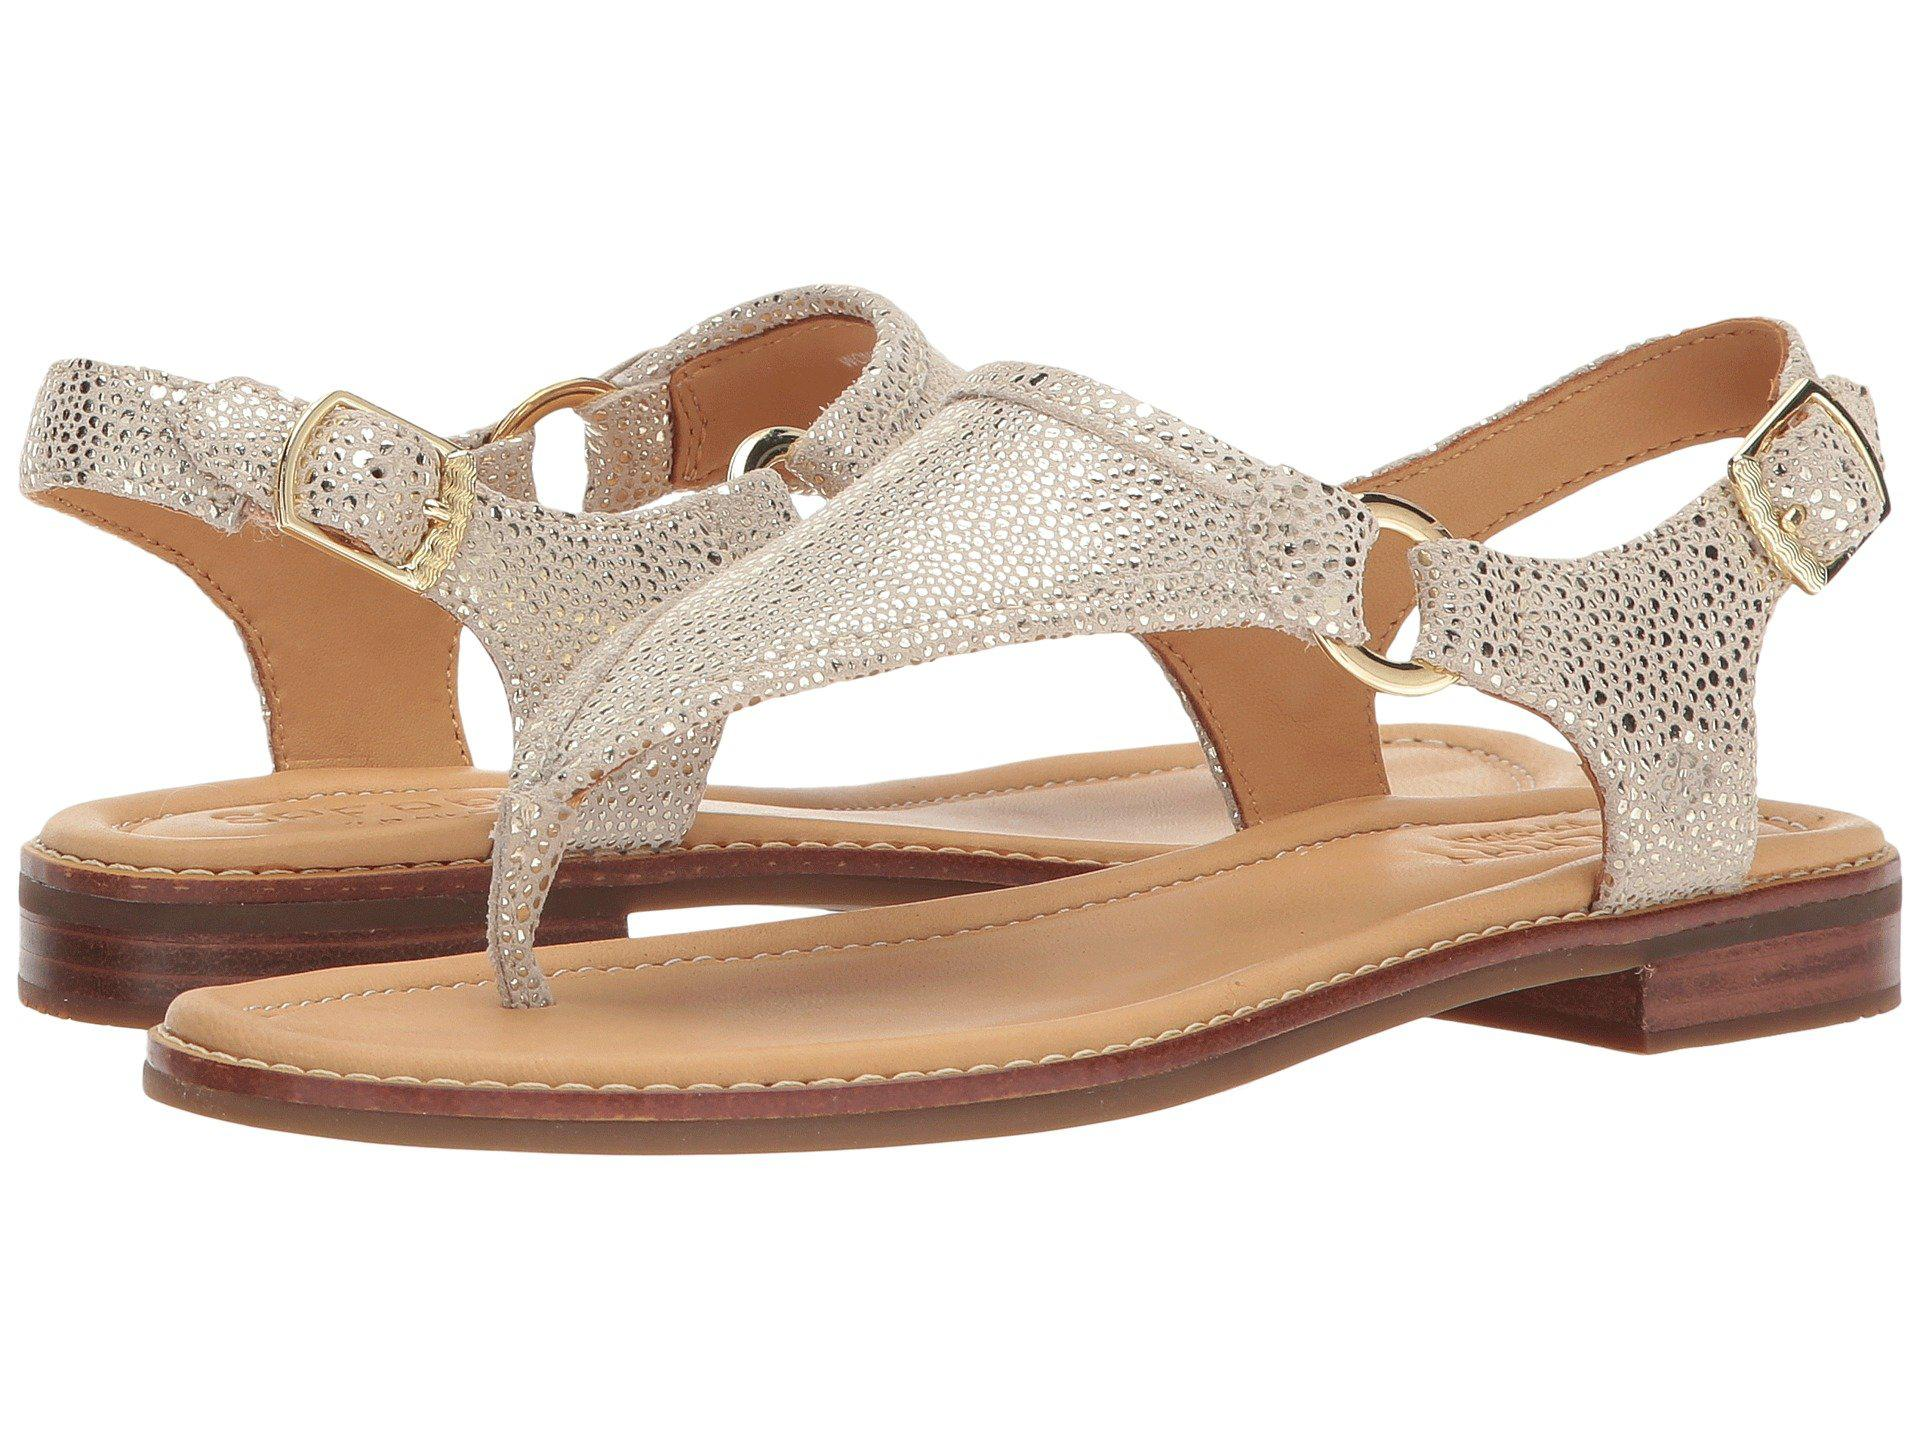 Sperry Abby Sparkle Sandals WO1gdLbGa